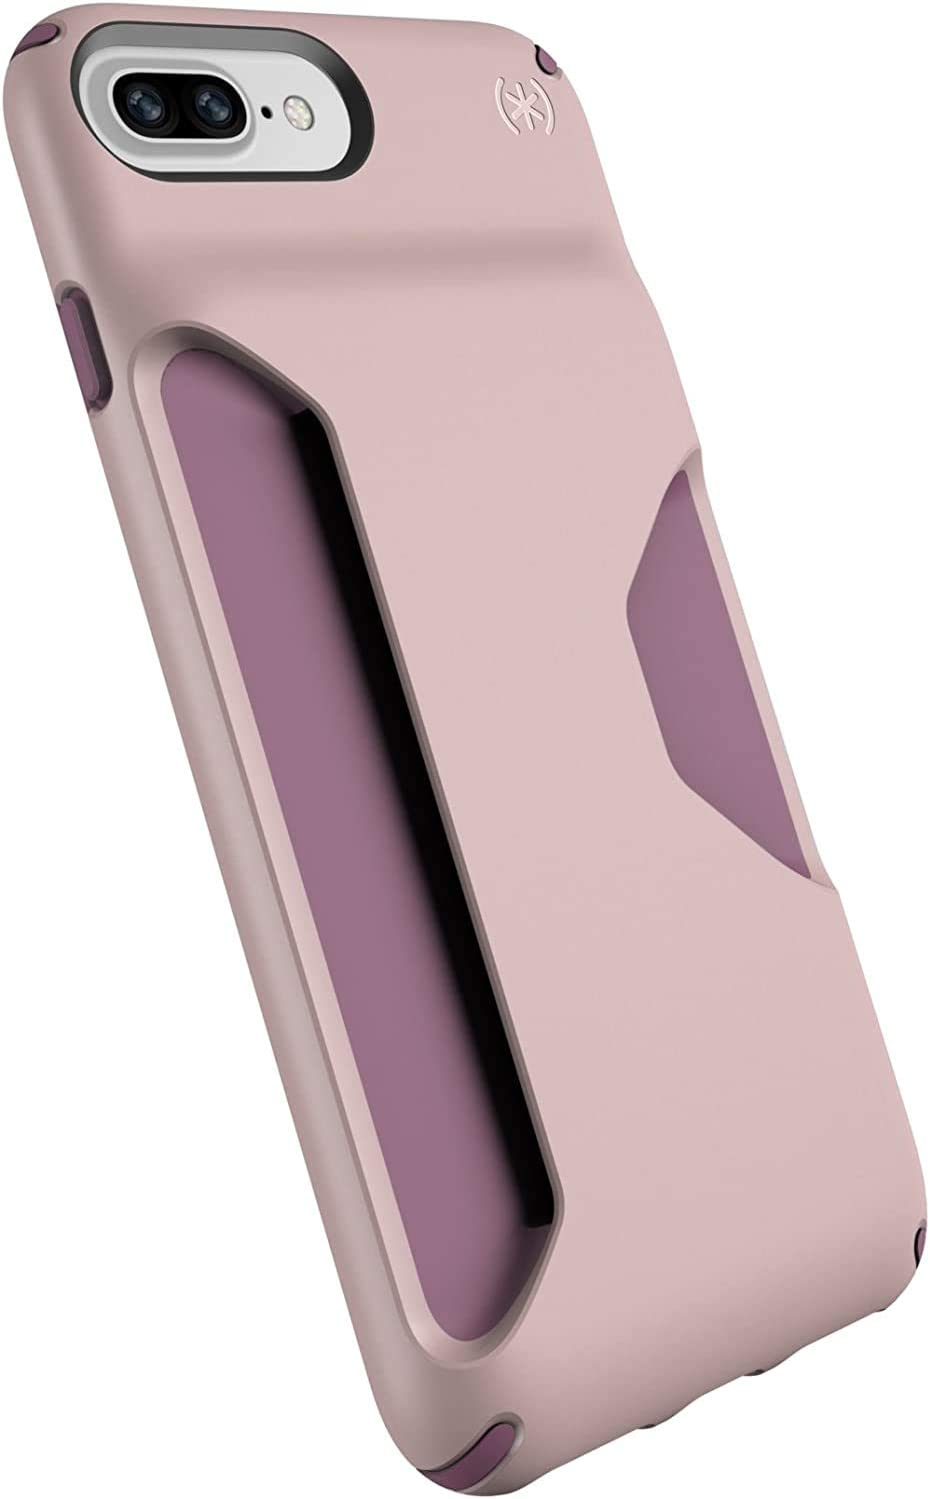 Speck Products Presidio Wallet Case for iPhone 8 Plus/7 Plus/6S Plus/6 Plus - Bulk Packaging - Clay Pink/Plum Berry Purple